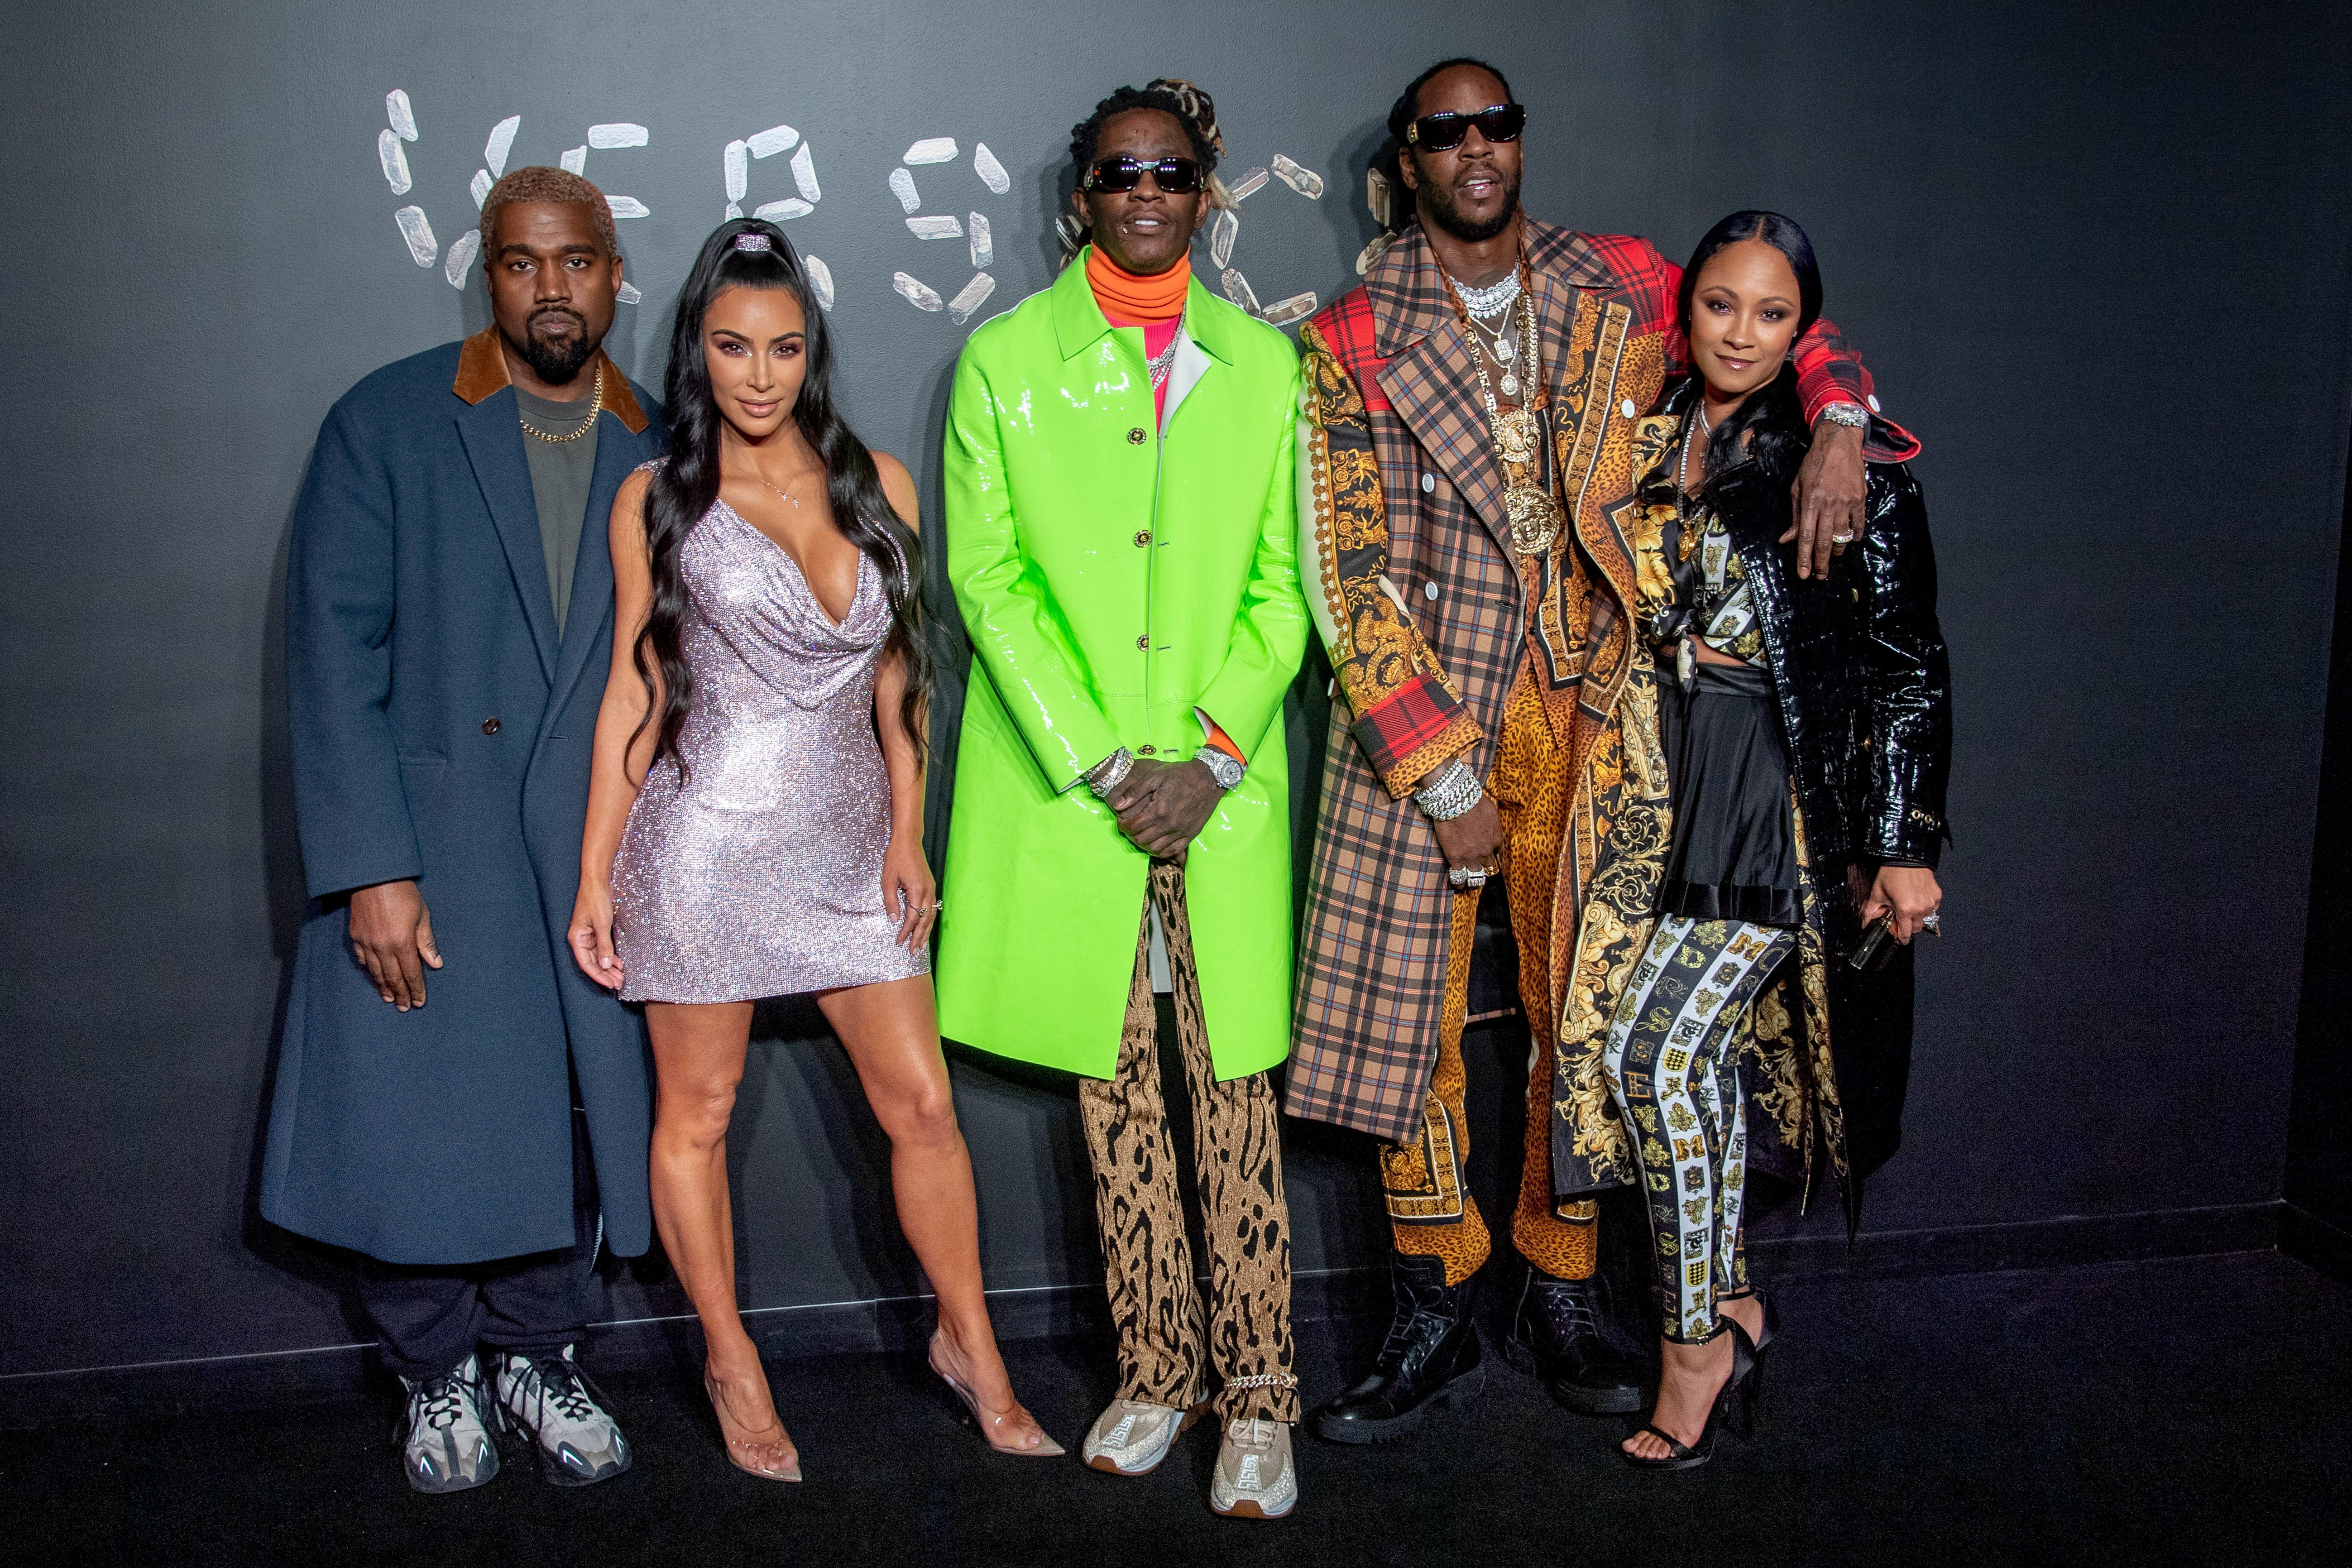 NEW YORK, NEW YORK - DECEMBER 02:  (L-R) Kanye West, Kim Kardashian West, Young Thug, 2 Chainz and Kesha Ward attend the the Versace fall 2019 fashion show at the American Stock Exchange Building in lower Manhattan on December 02, 2018 in New York City. (Photo by Roy Rochlin/Getty Images)